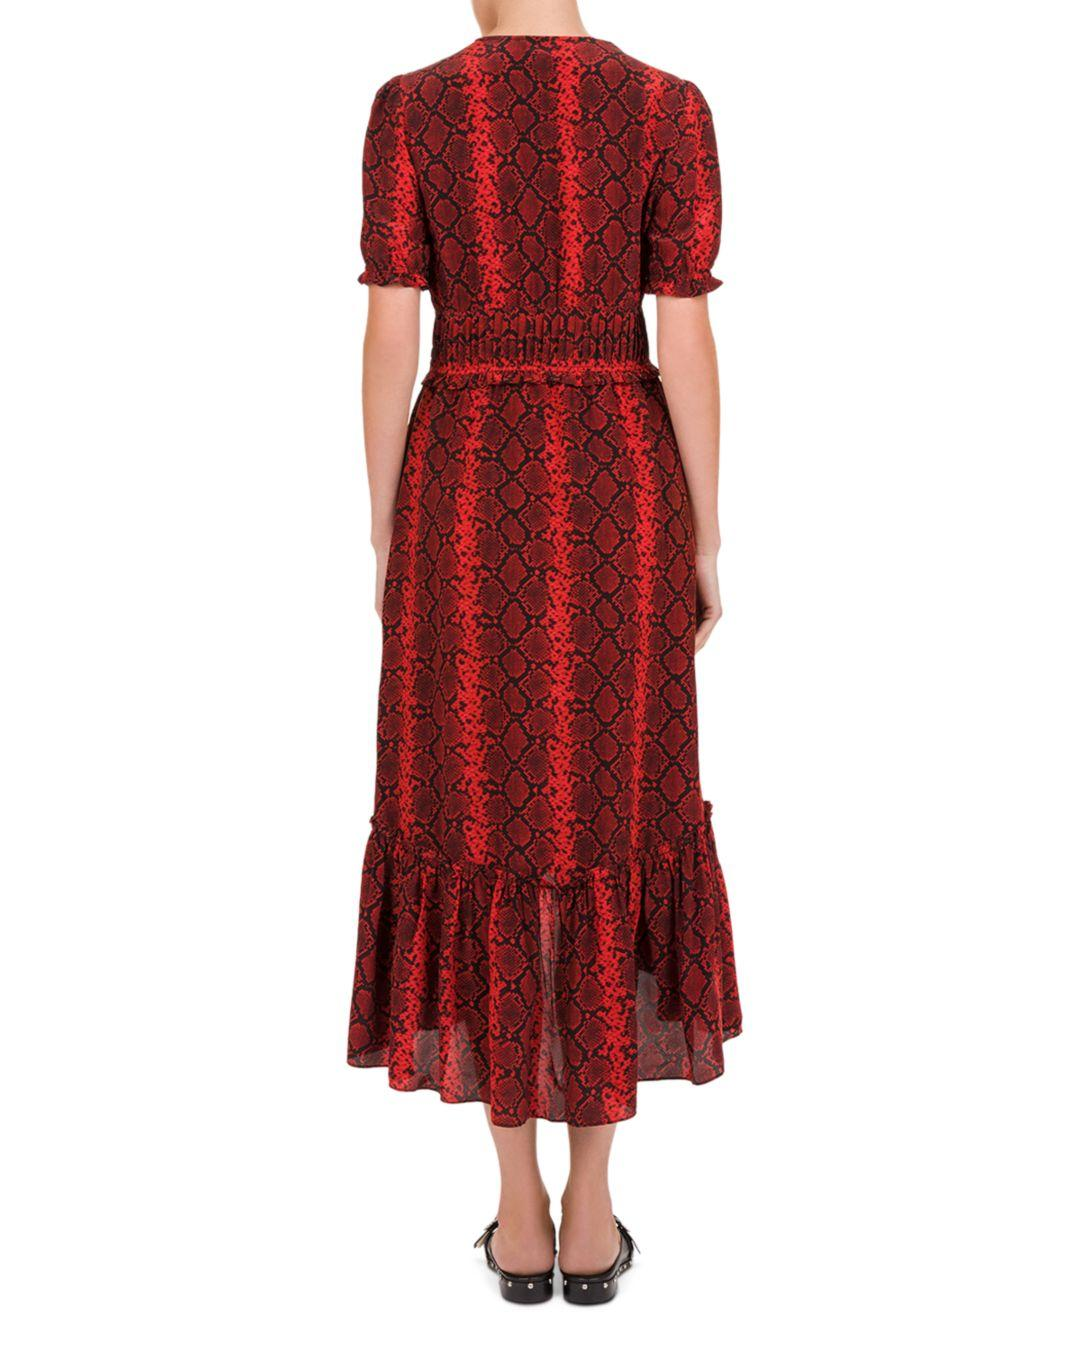 8a6430a49e The Kooples Red Hot Snake-print Midi Dress in Red - Lyst